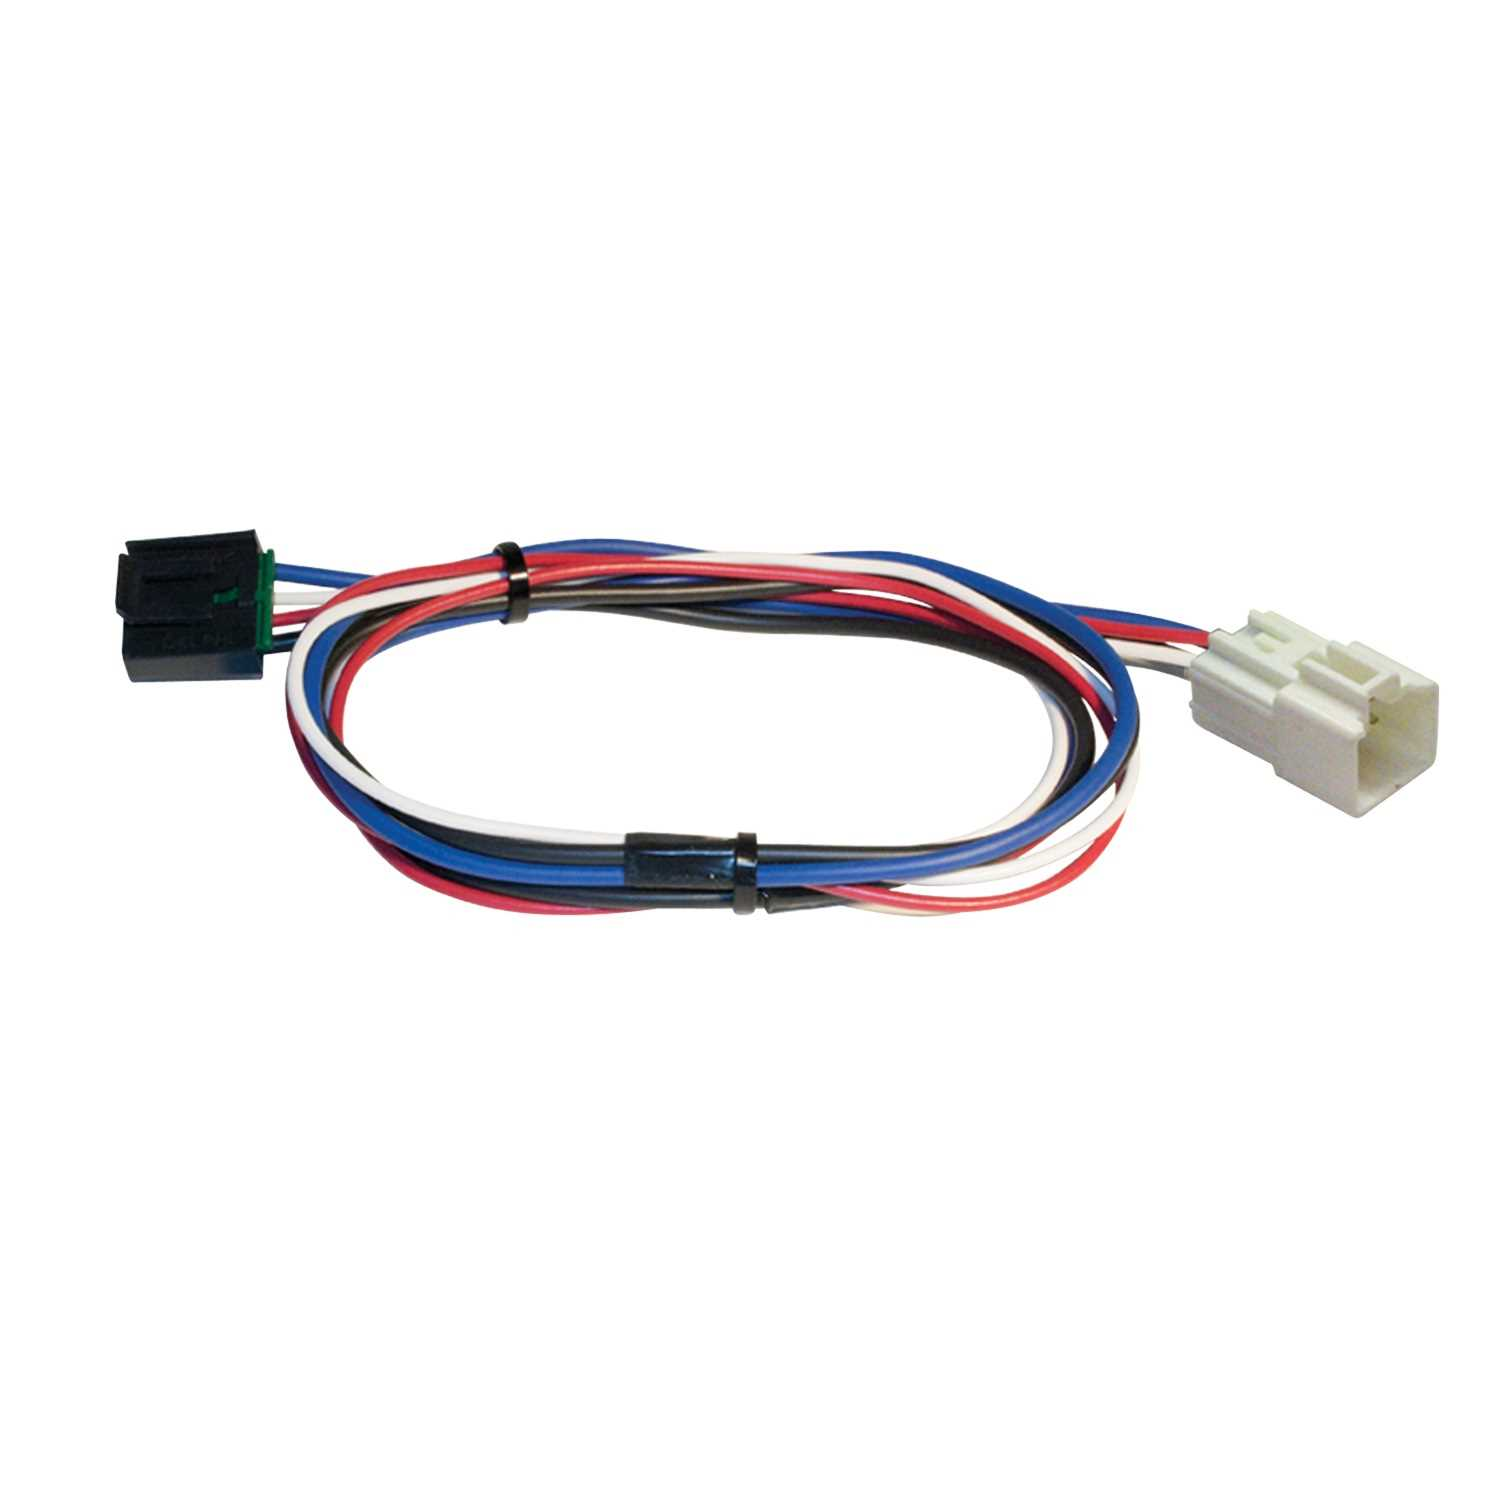 Trailer Wiring Harness Johns Trim Shop Automotive Electrical Wire Connector View Westin 65 75285